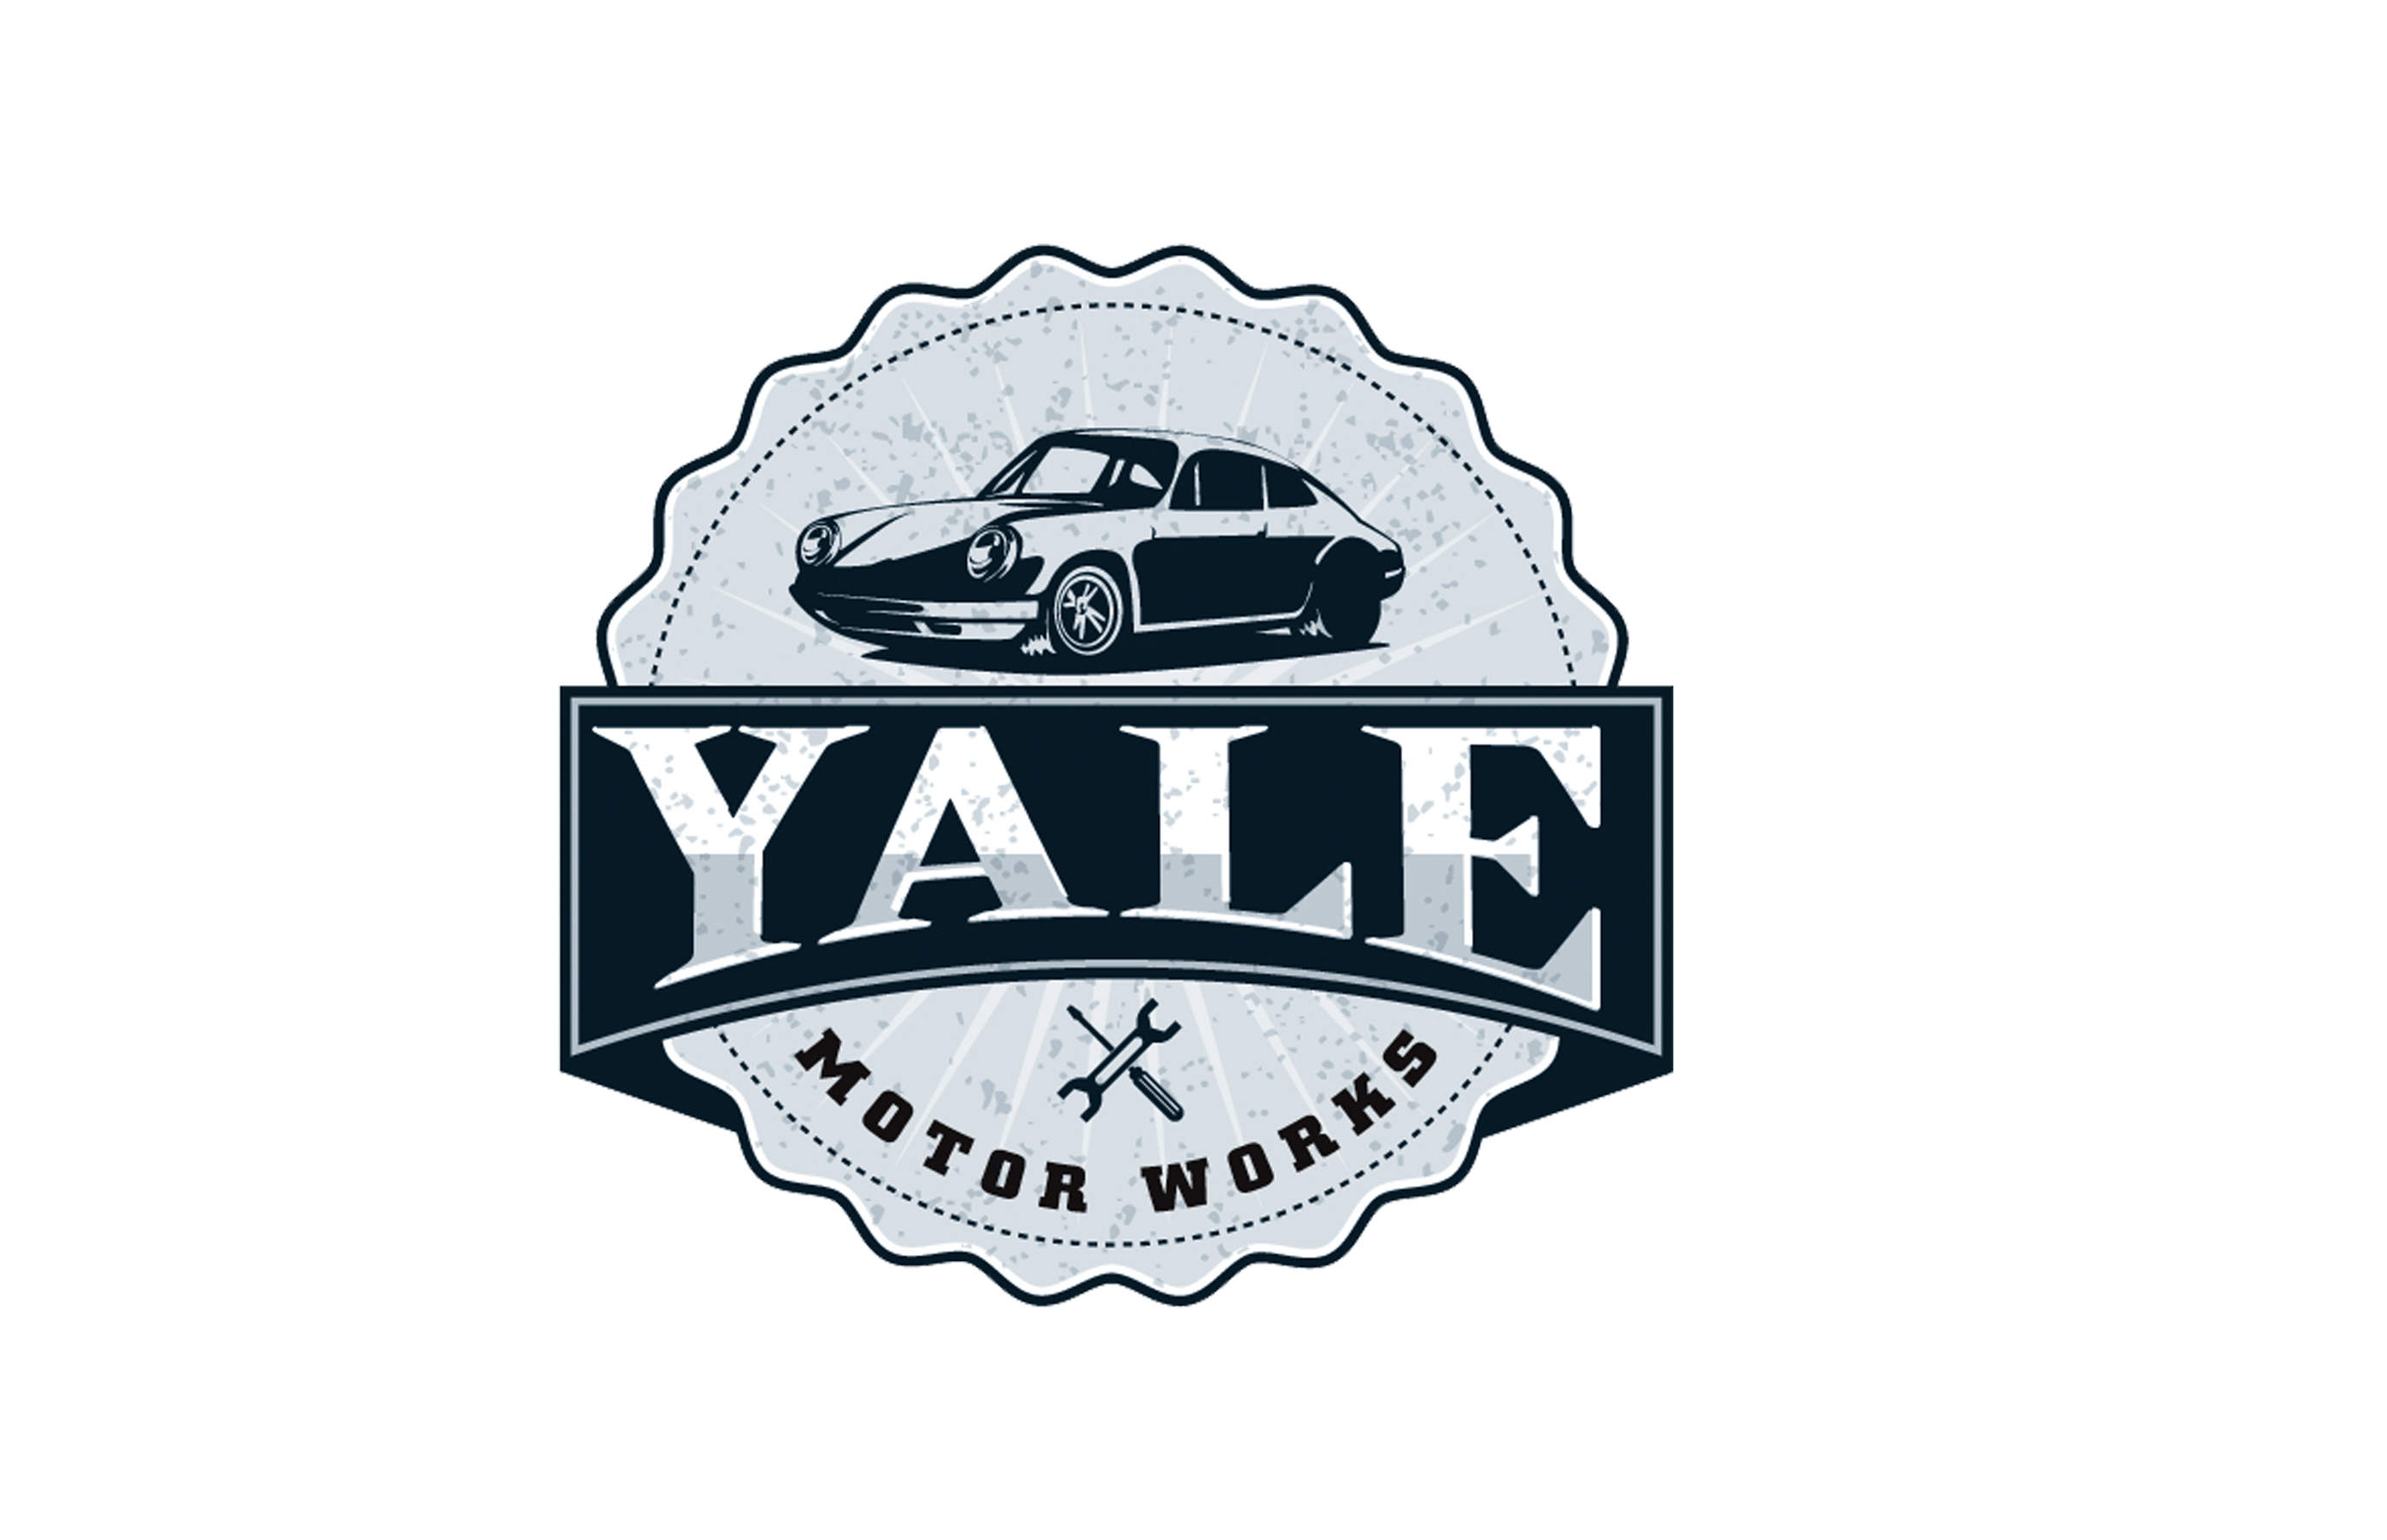 Yale Motor Works - Auto & Truck Repair New Haven, CT